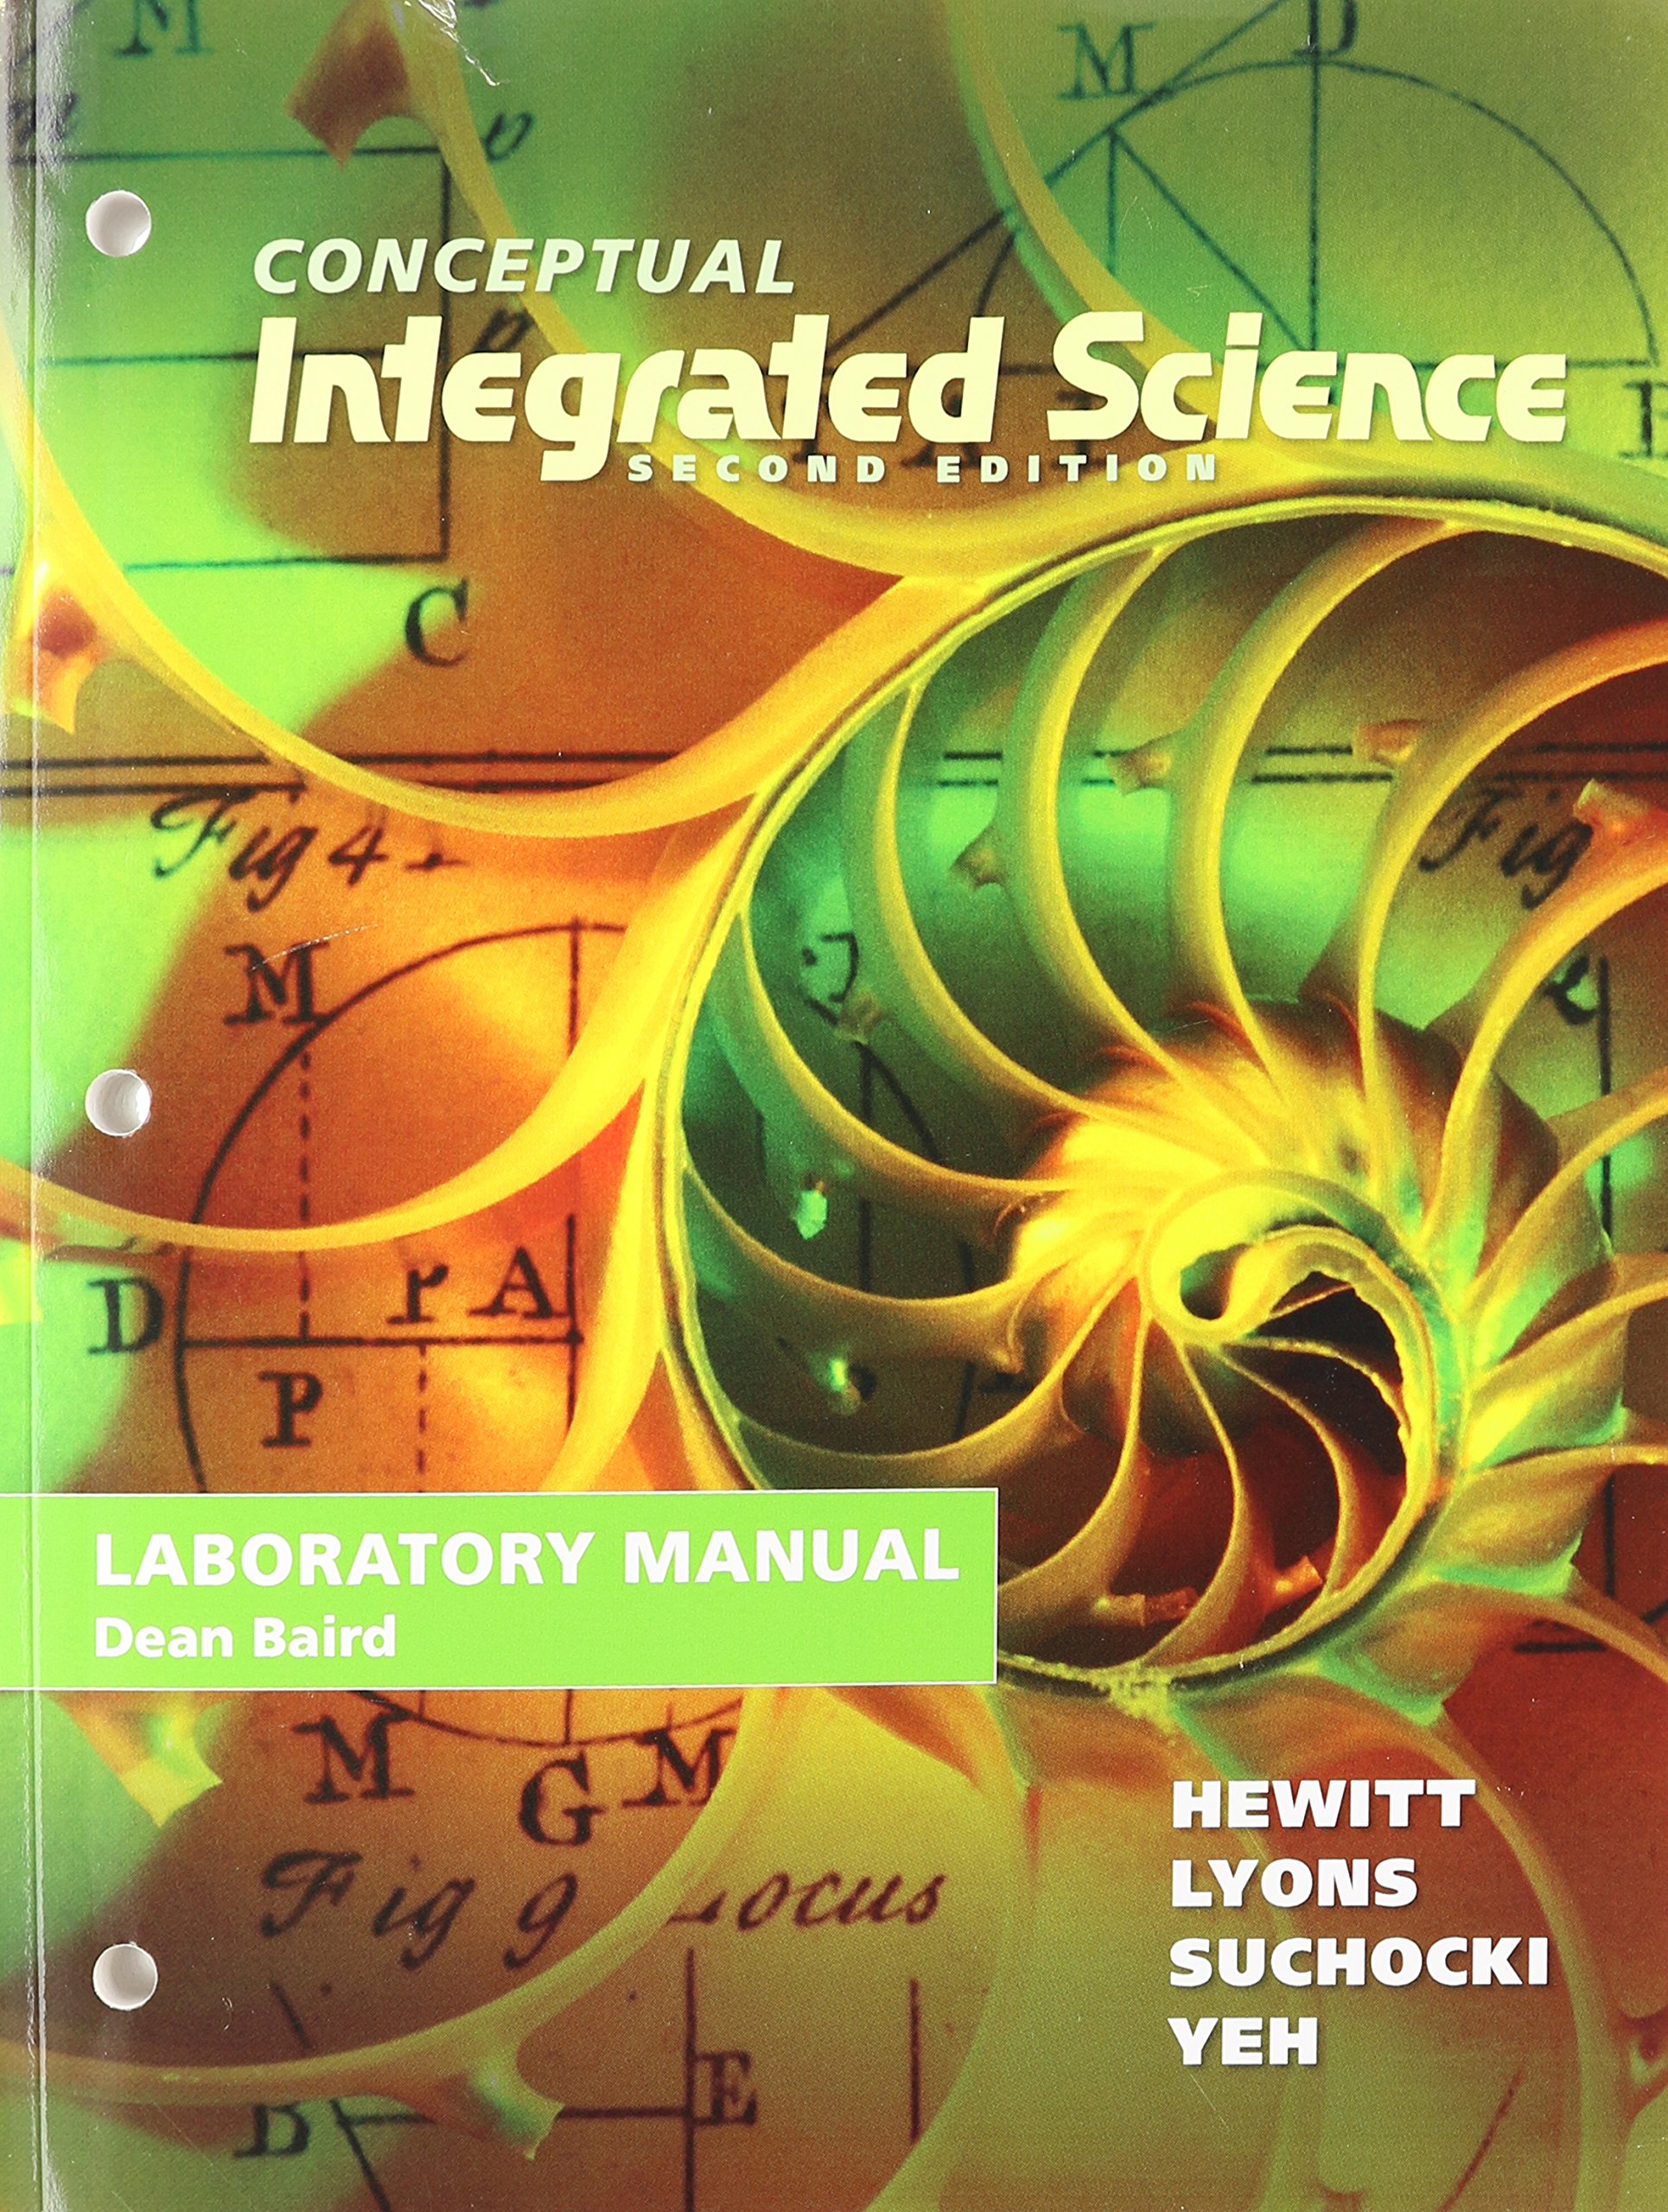 Lab Manual for Conceptual Integrated Science: Paul G. Hewitt, Suzanne A  Lyons, John A. Suchocki, Jennifer Yeh: 9780321822970: Books - Amazon.ca